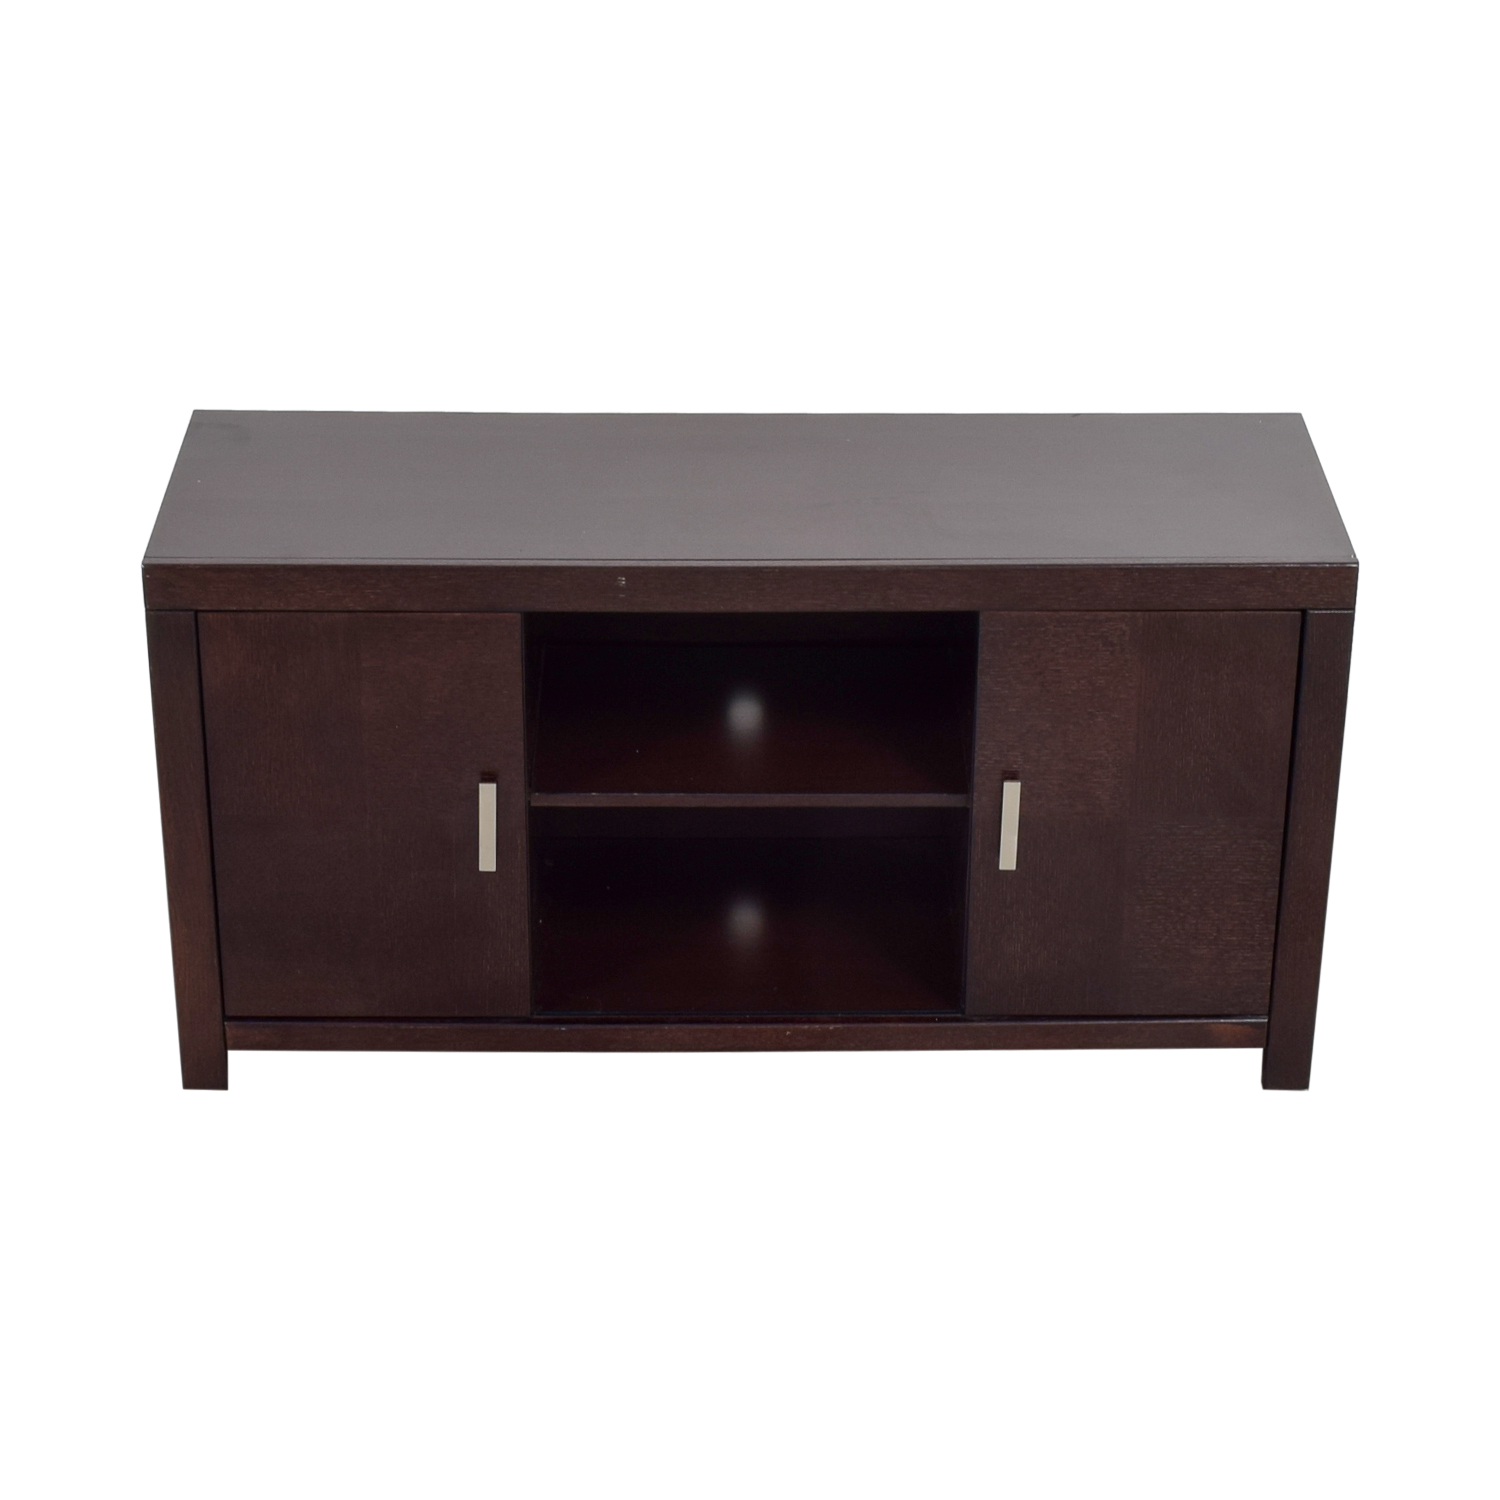 Value Furniture Value Furniture Brown TV Stand on sale